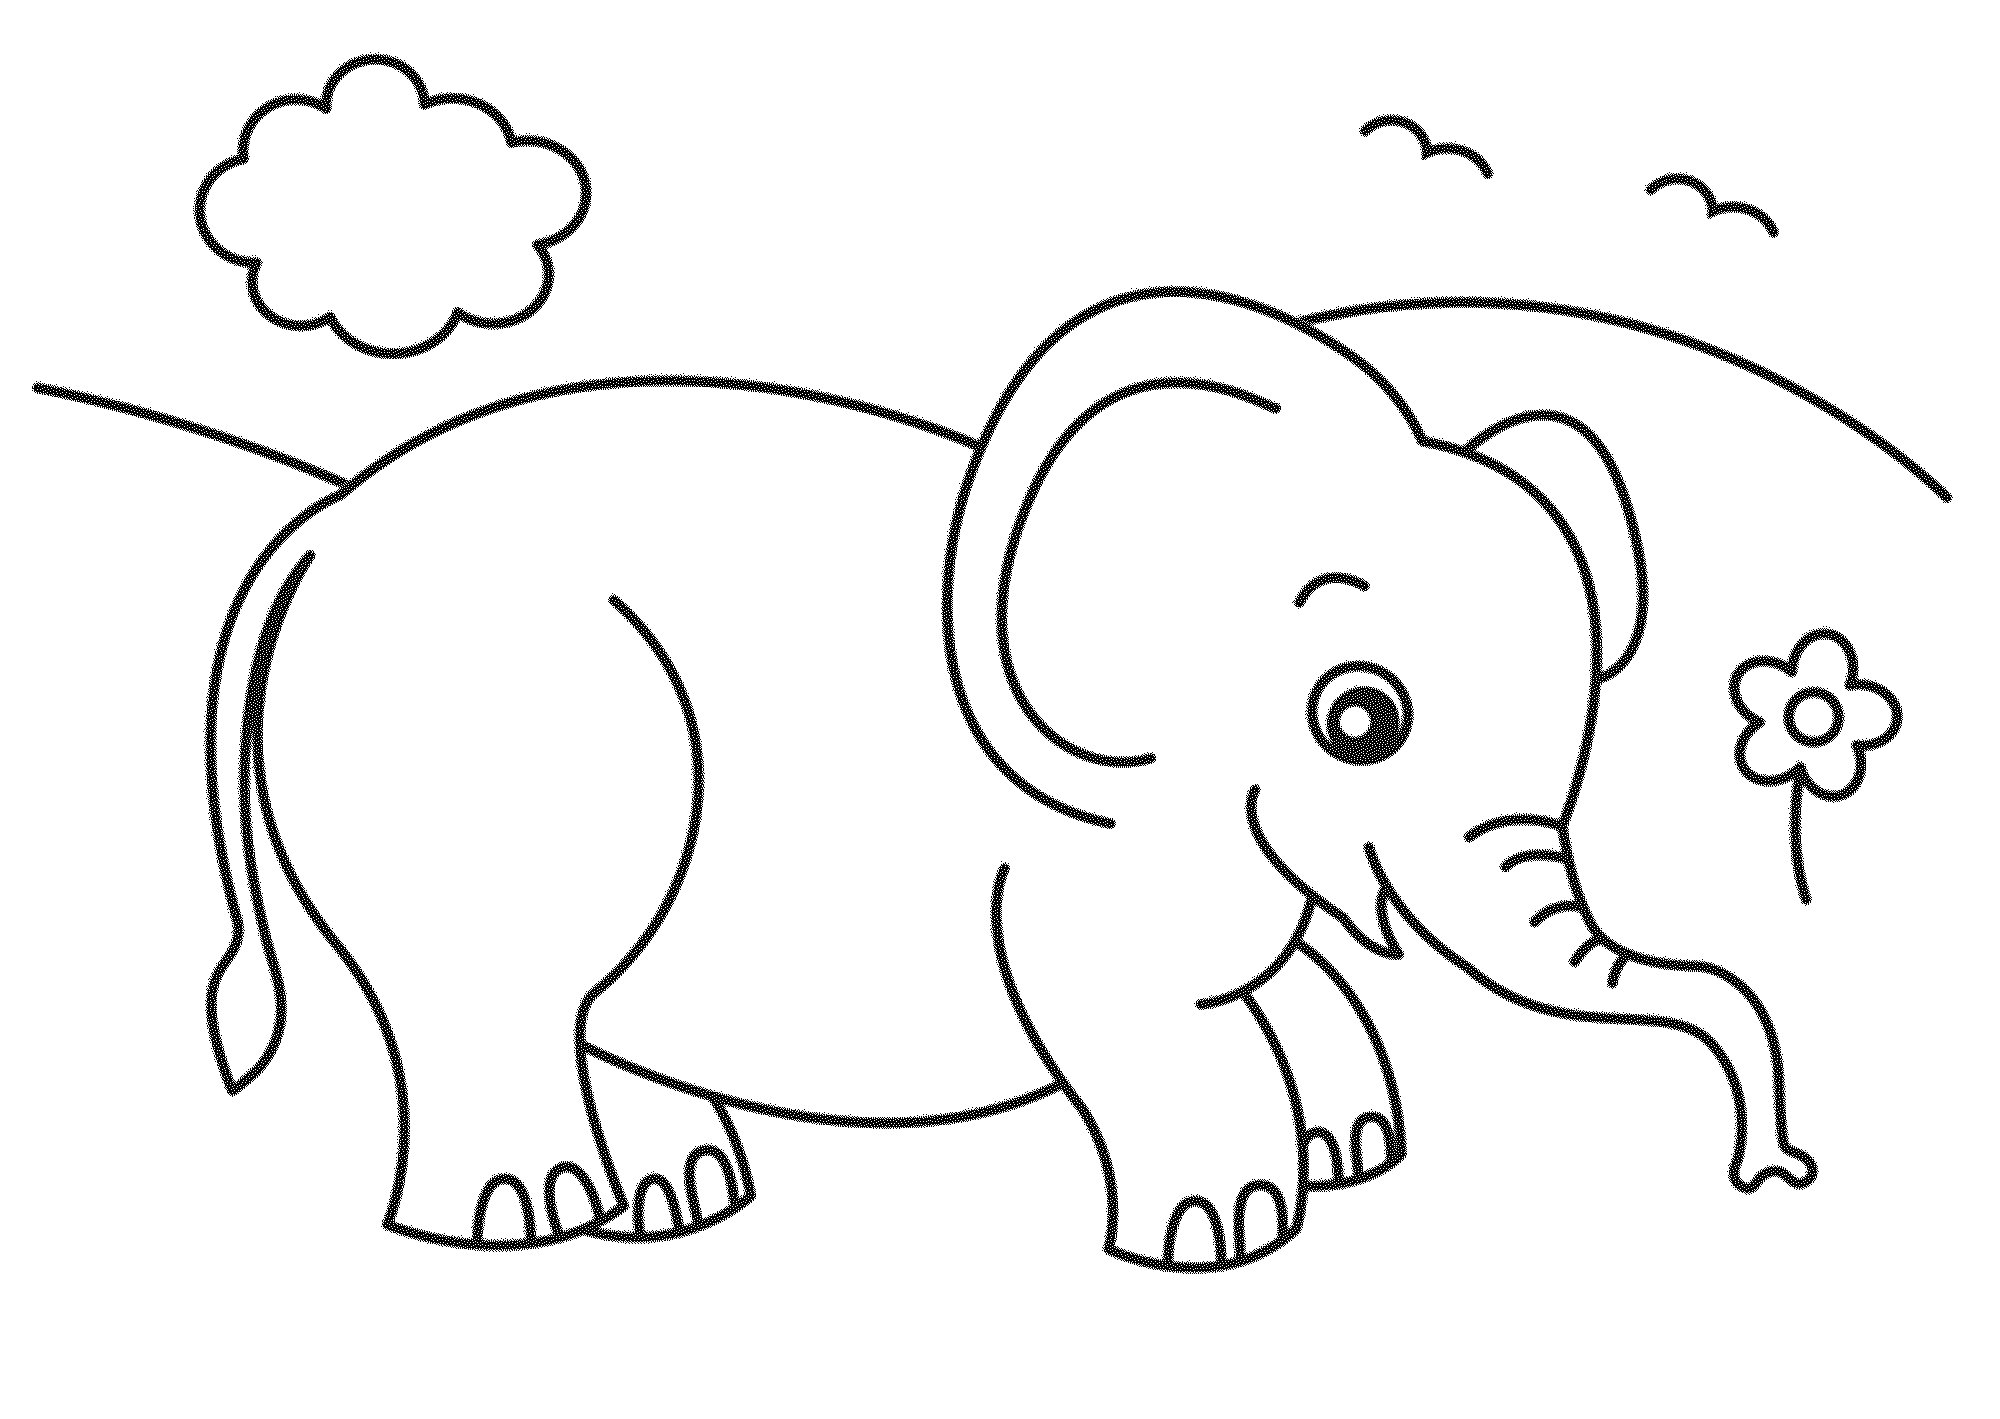 free printable elephant pictures color pages color page elephant coloring free printable pictures elephant free printable